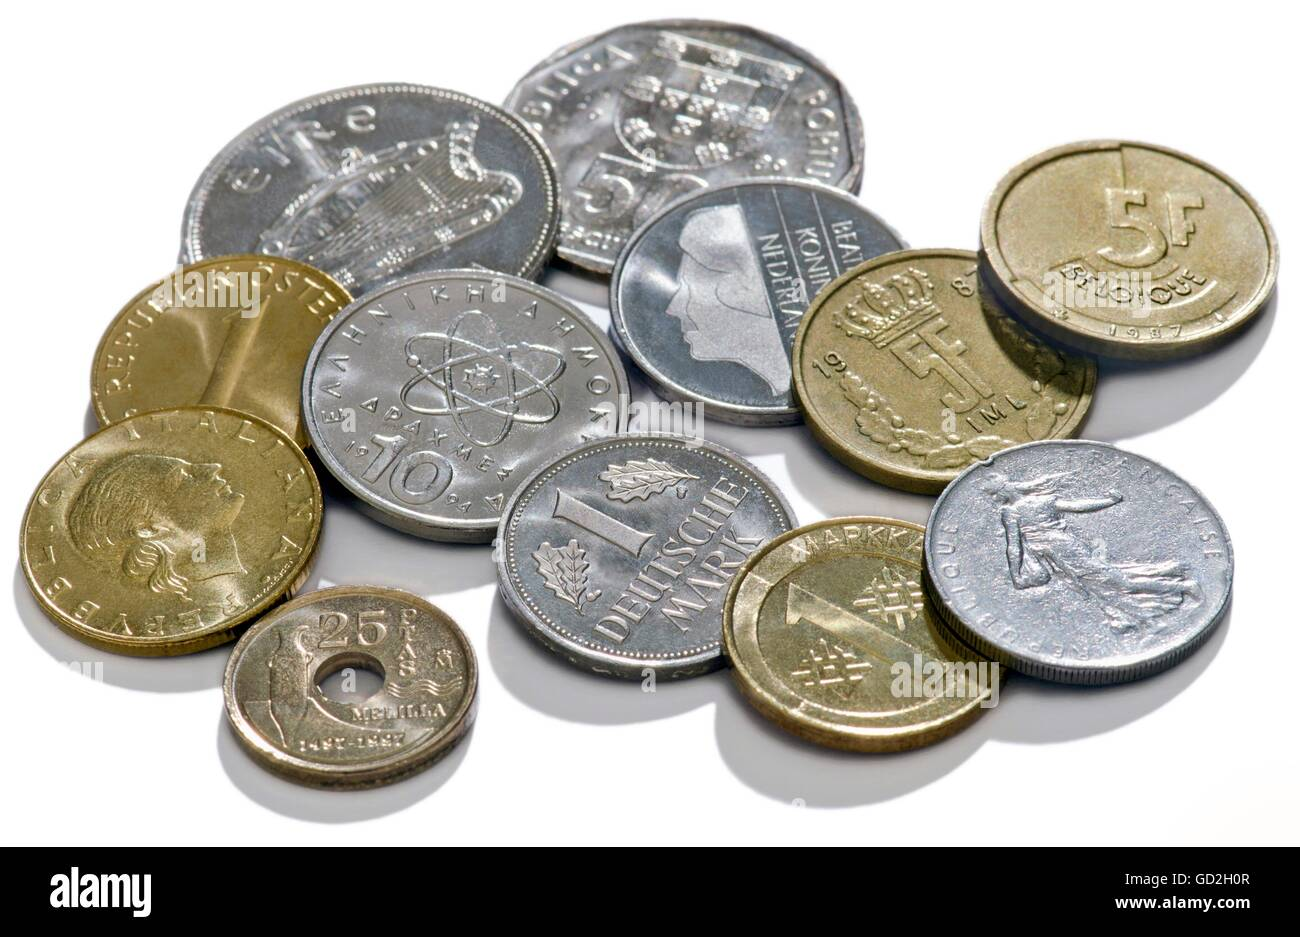 money / finances, coins, Germany, circa 1985 until 1992, national currency before the Euro Launch 2002, former currency, Stock Photo